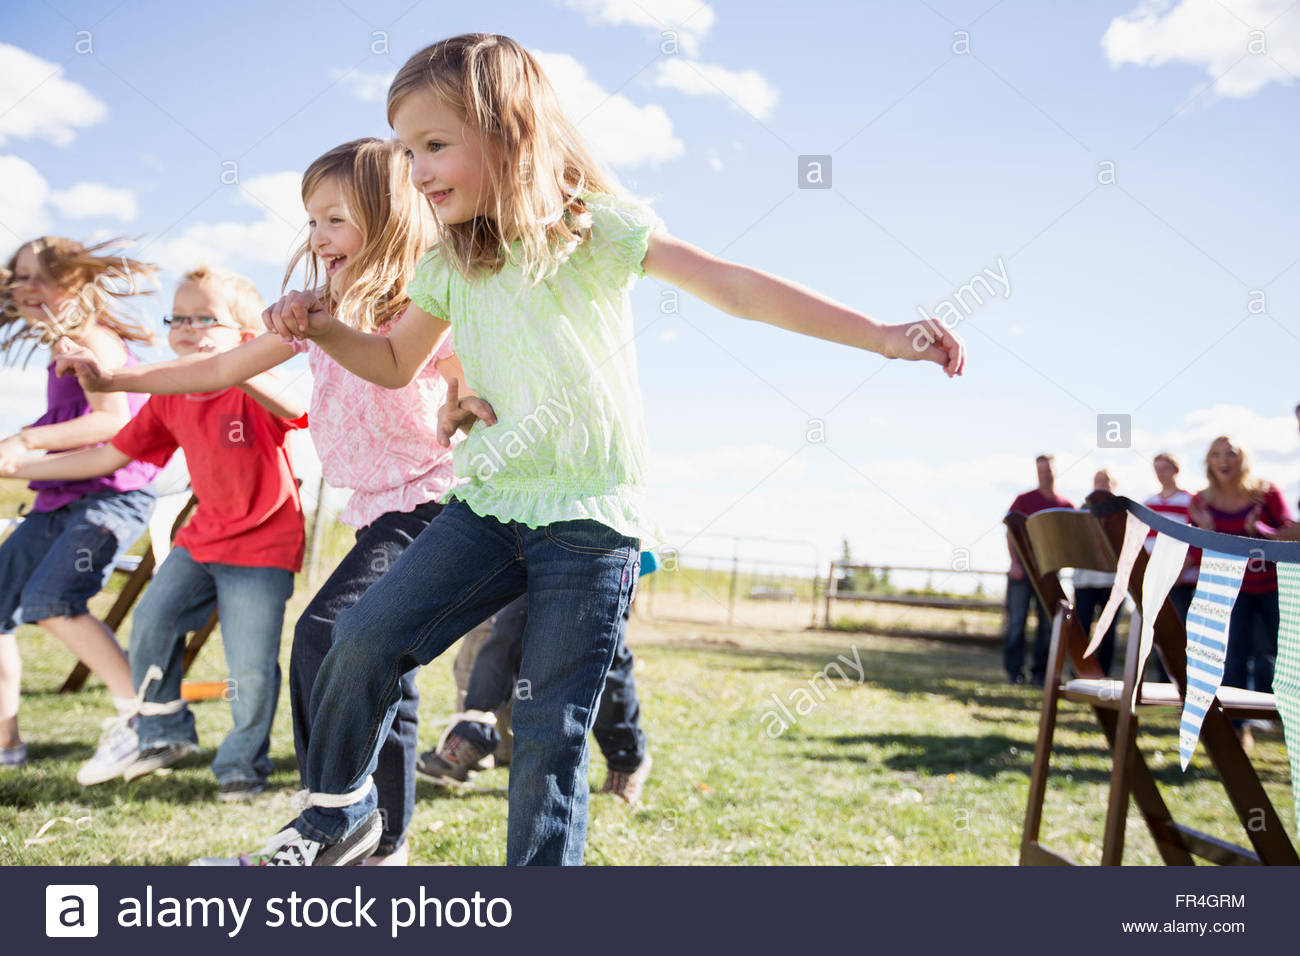 Children competing in 3 legged race at reunion. - Stock Image